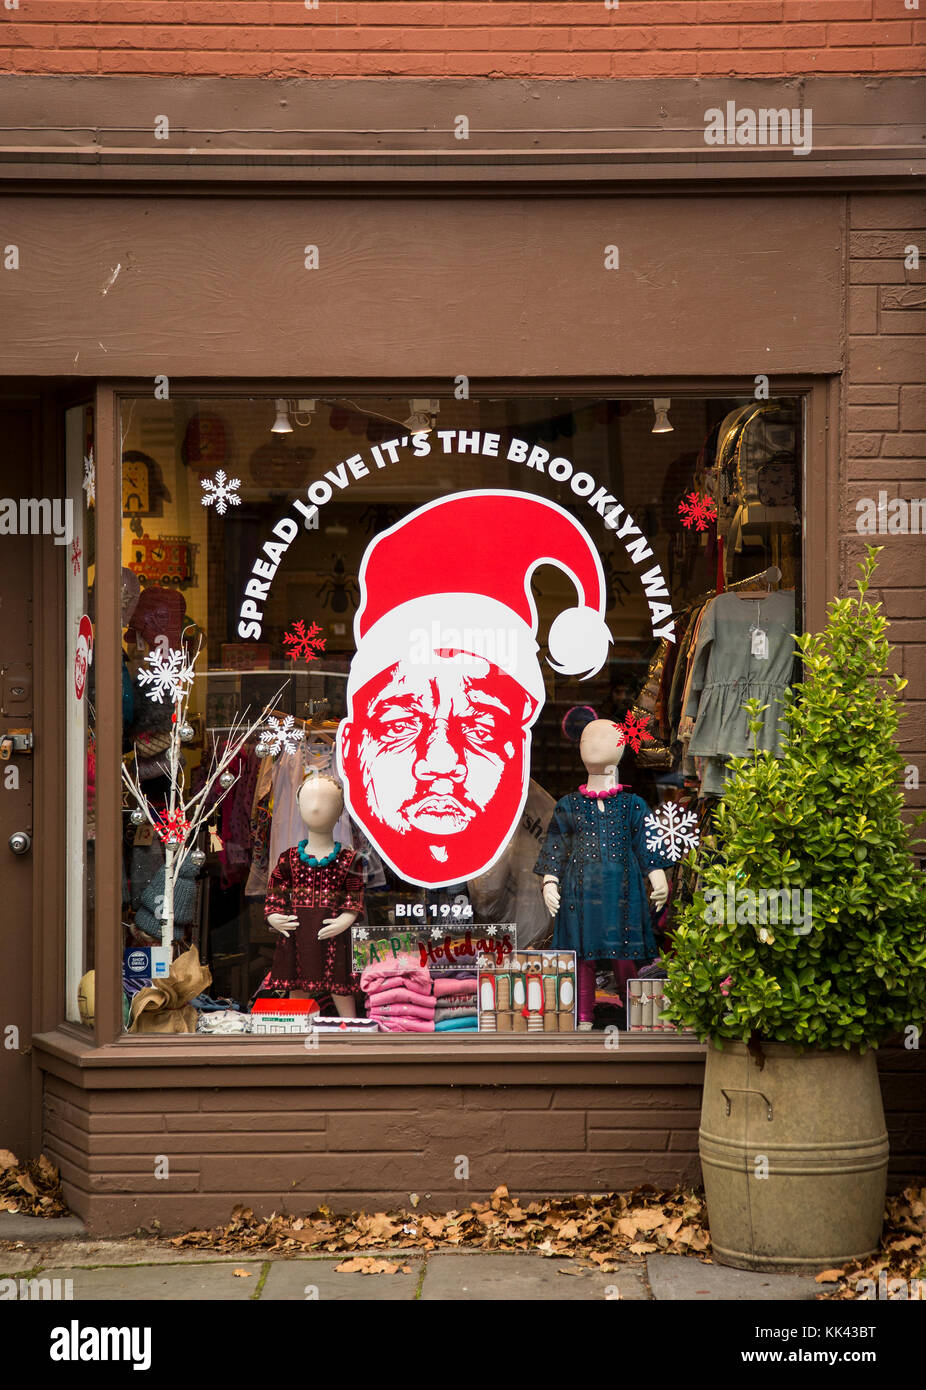 Image of the rapper Biggie Smalls in a Brooklyn storefront window during the Christmas season - Stock Image